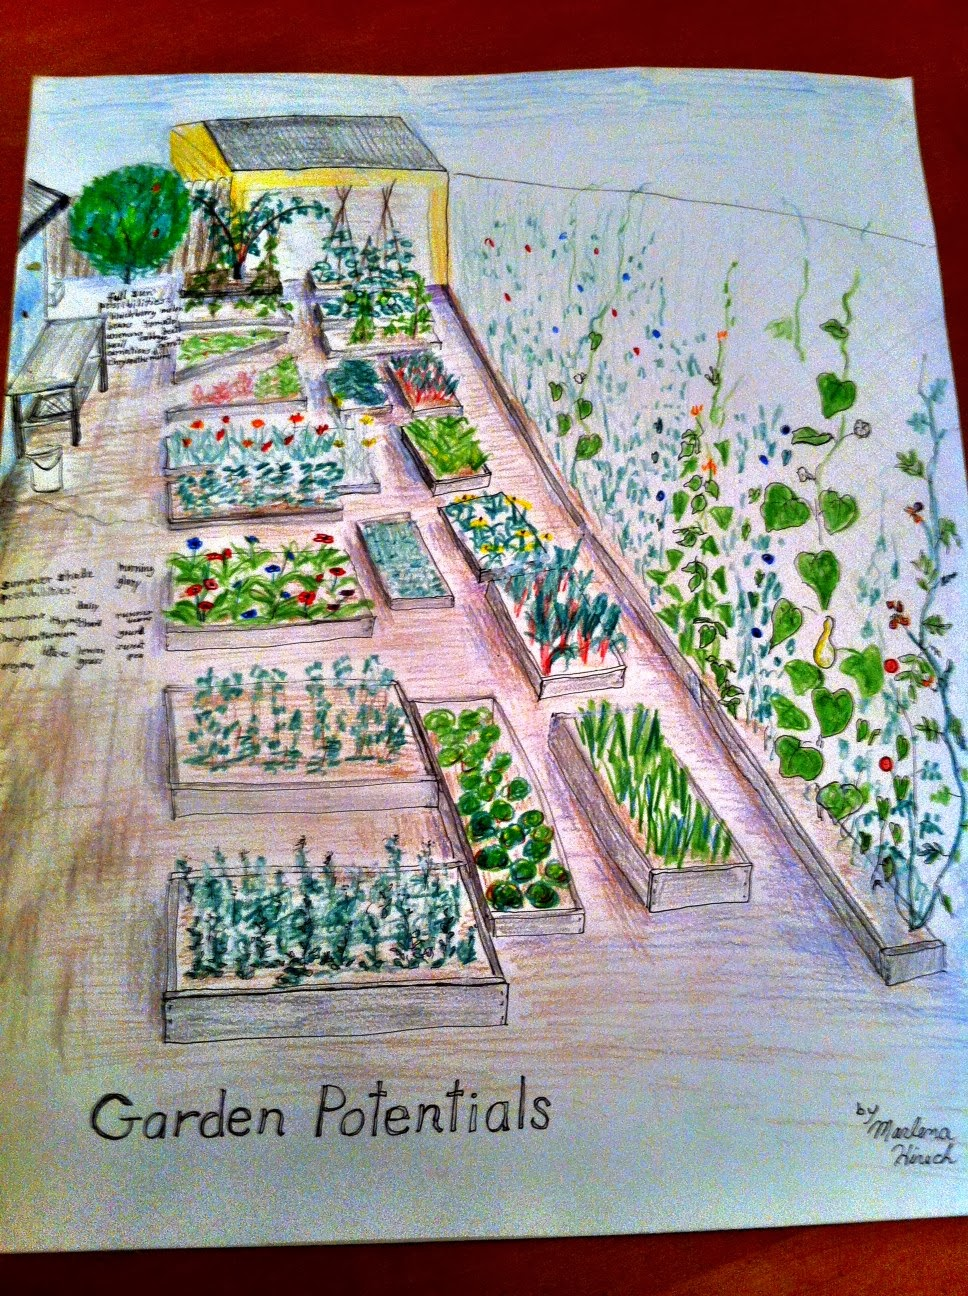 A Vision for the Lewis Garden